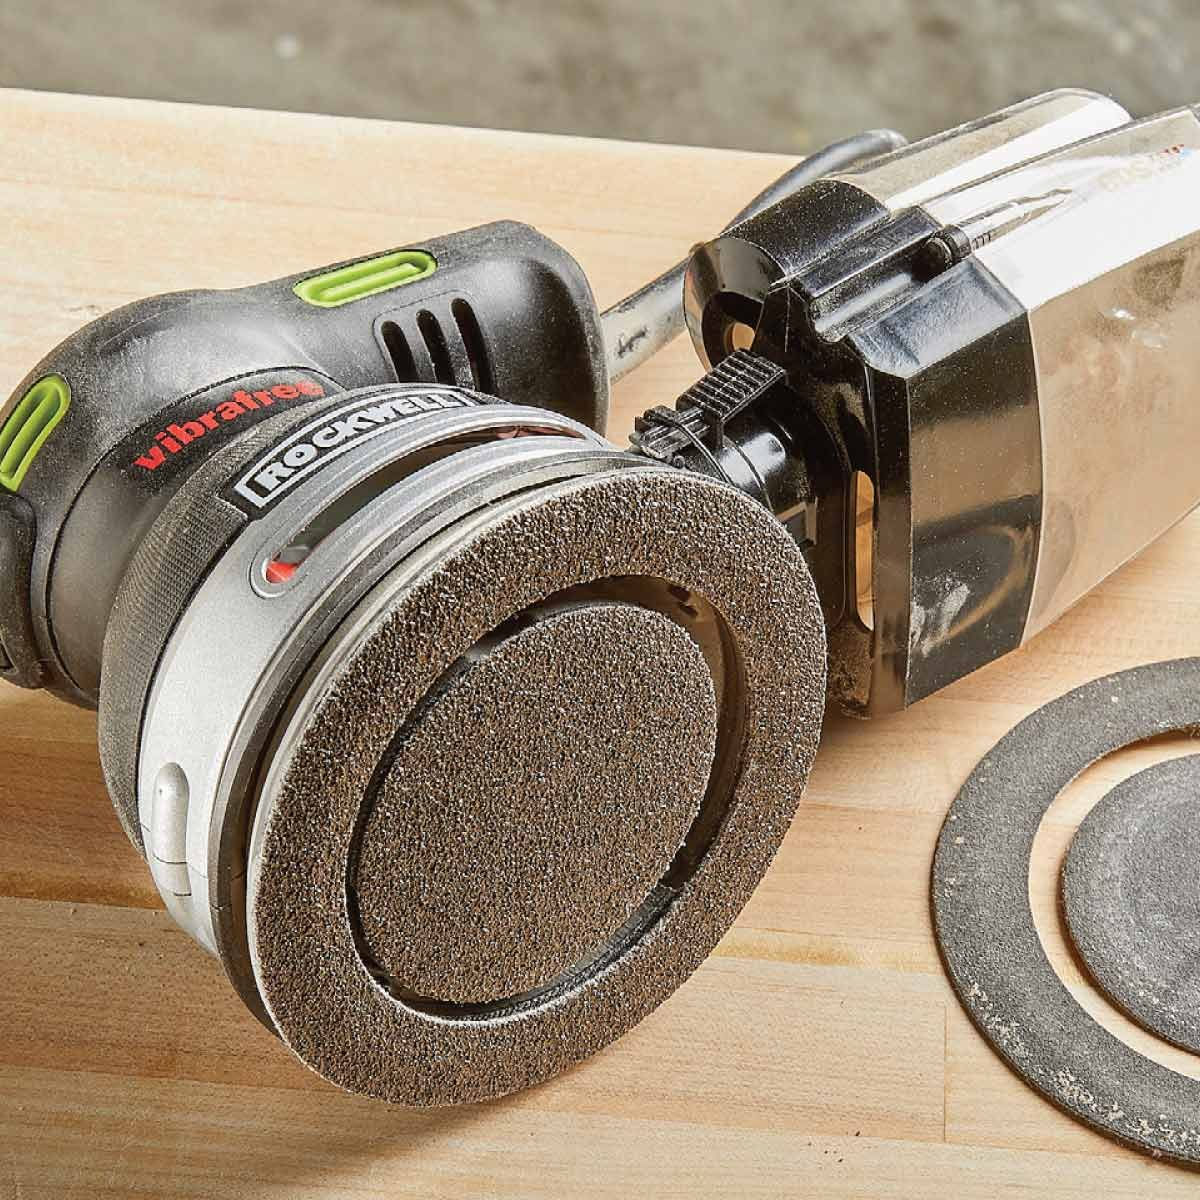 Rockwell Vibrafree Sander Featured